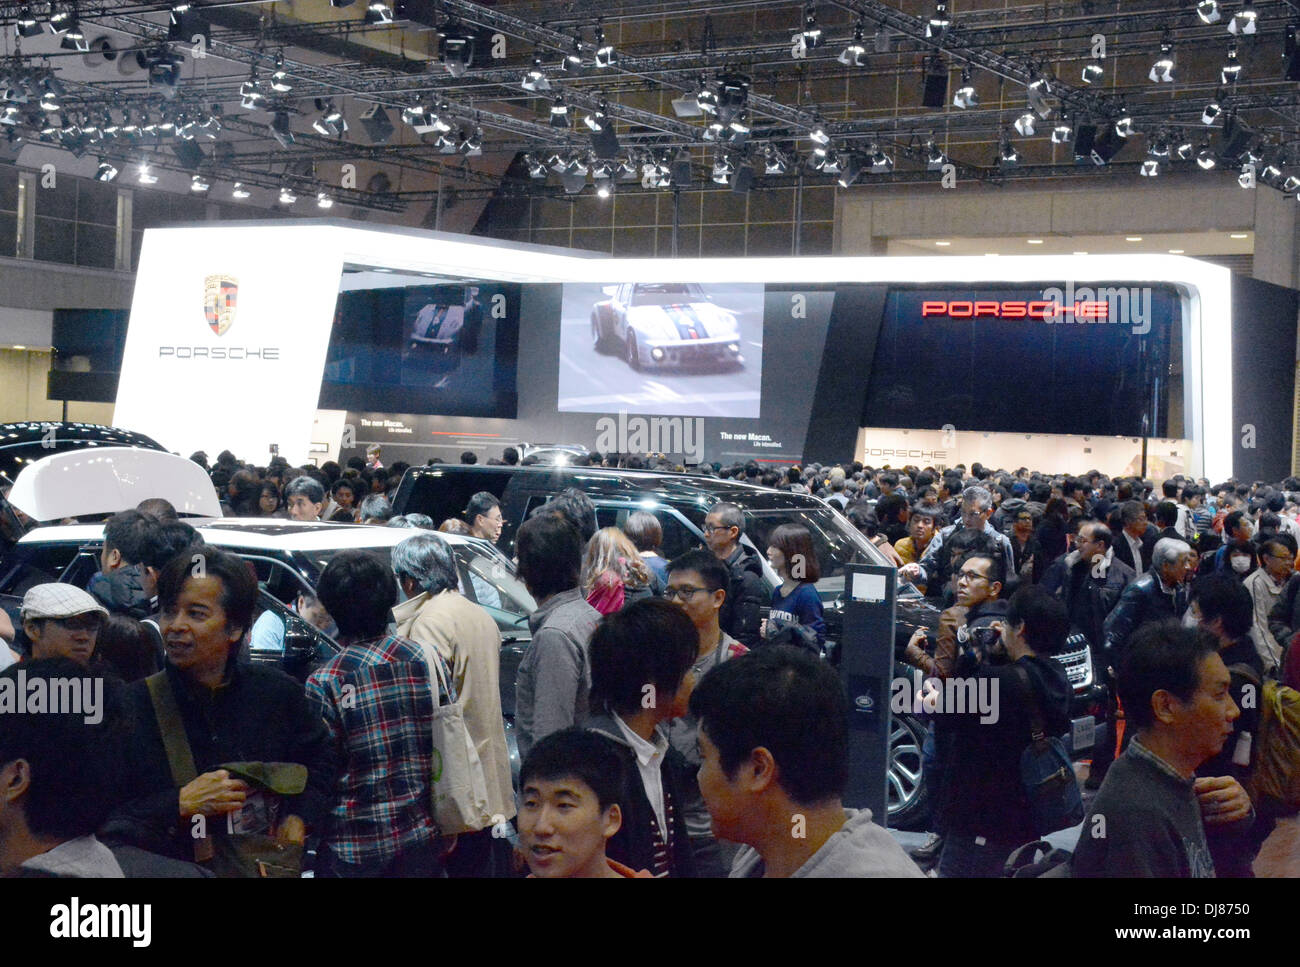 Tokyo, Japan. 23rd Nov, 2013. A huge crowd throngs around showpieces as the 43rd Tokyo Motor Show opens to the general public on Saturday, November 23, 2013, at Tokyo Big Sight. About 13,5800 people visited on the first day of the 10-day extravaganza, which showcases Japanese automakers' latest electronic technology and eco-friendly cars aimed at the growing low-emissions sector. Credit:  Kaku Kurita/AFLO/Alamy Live News - Stock Image